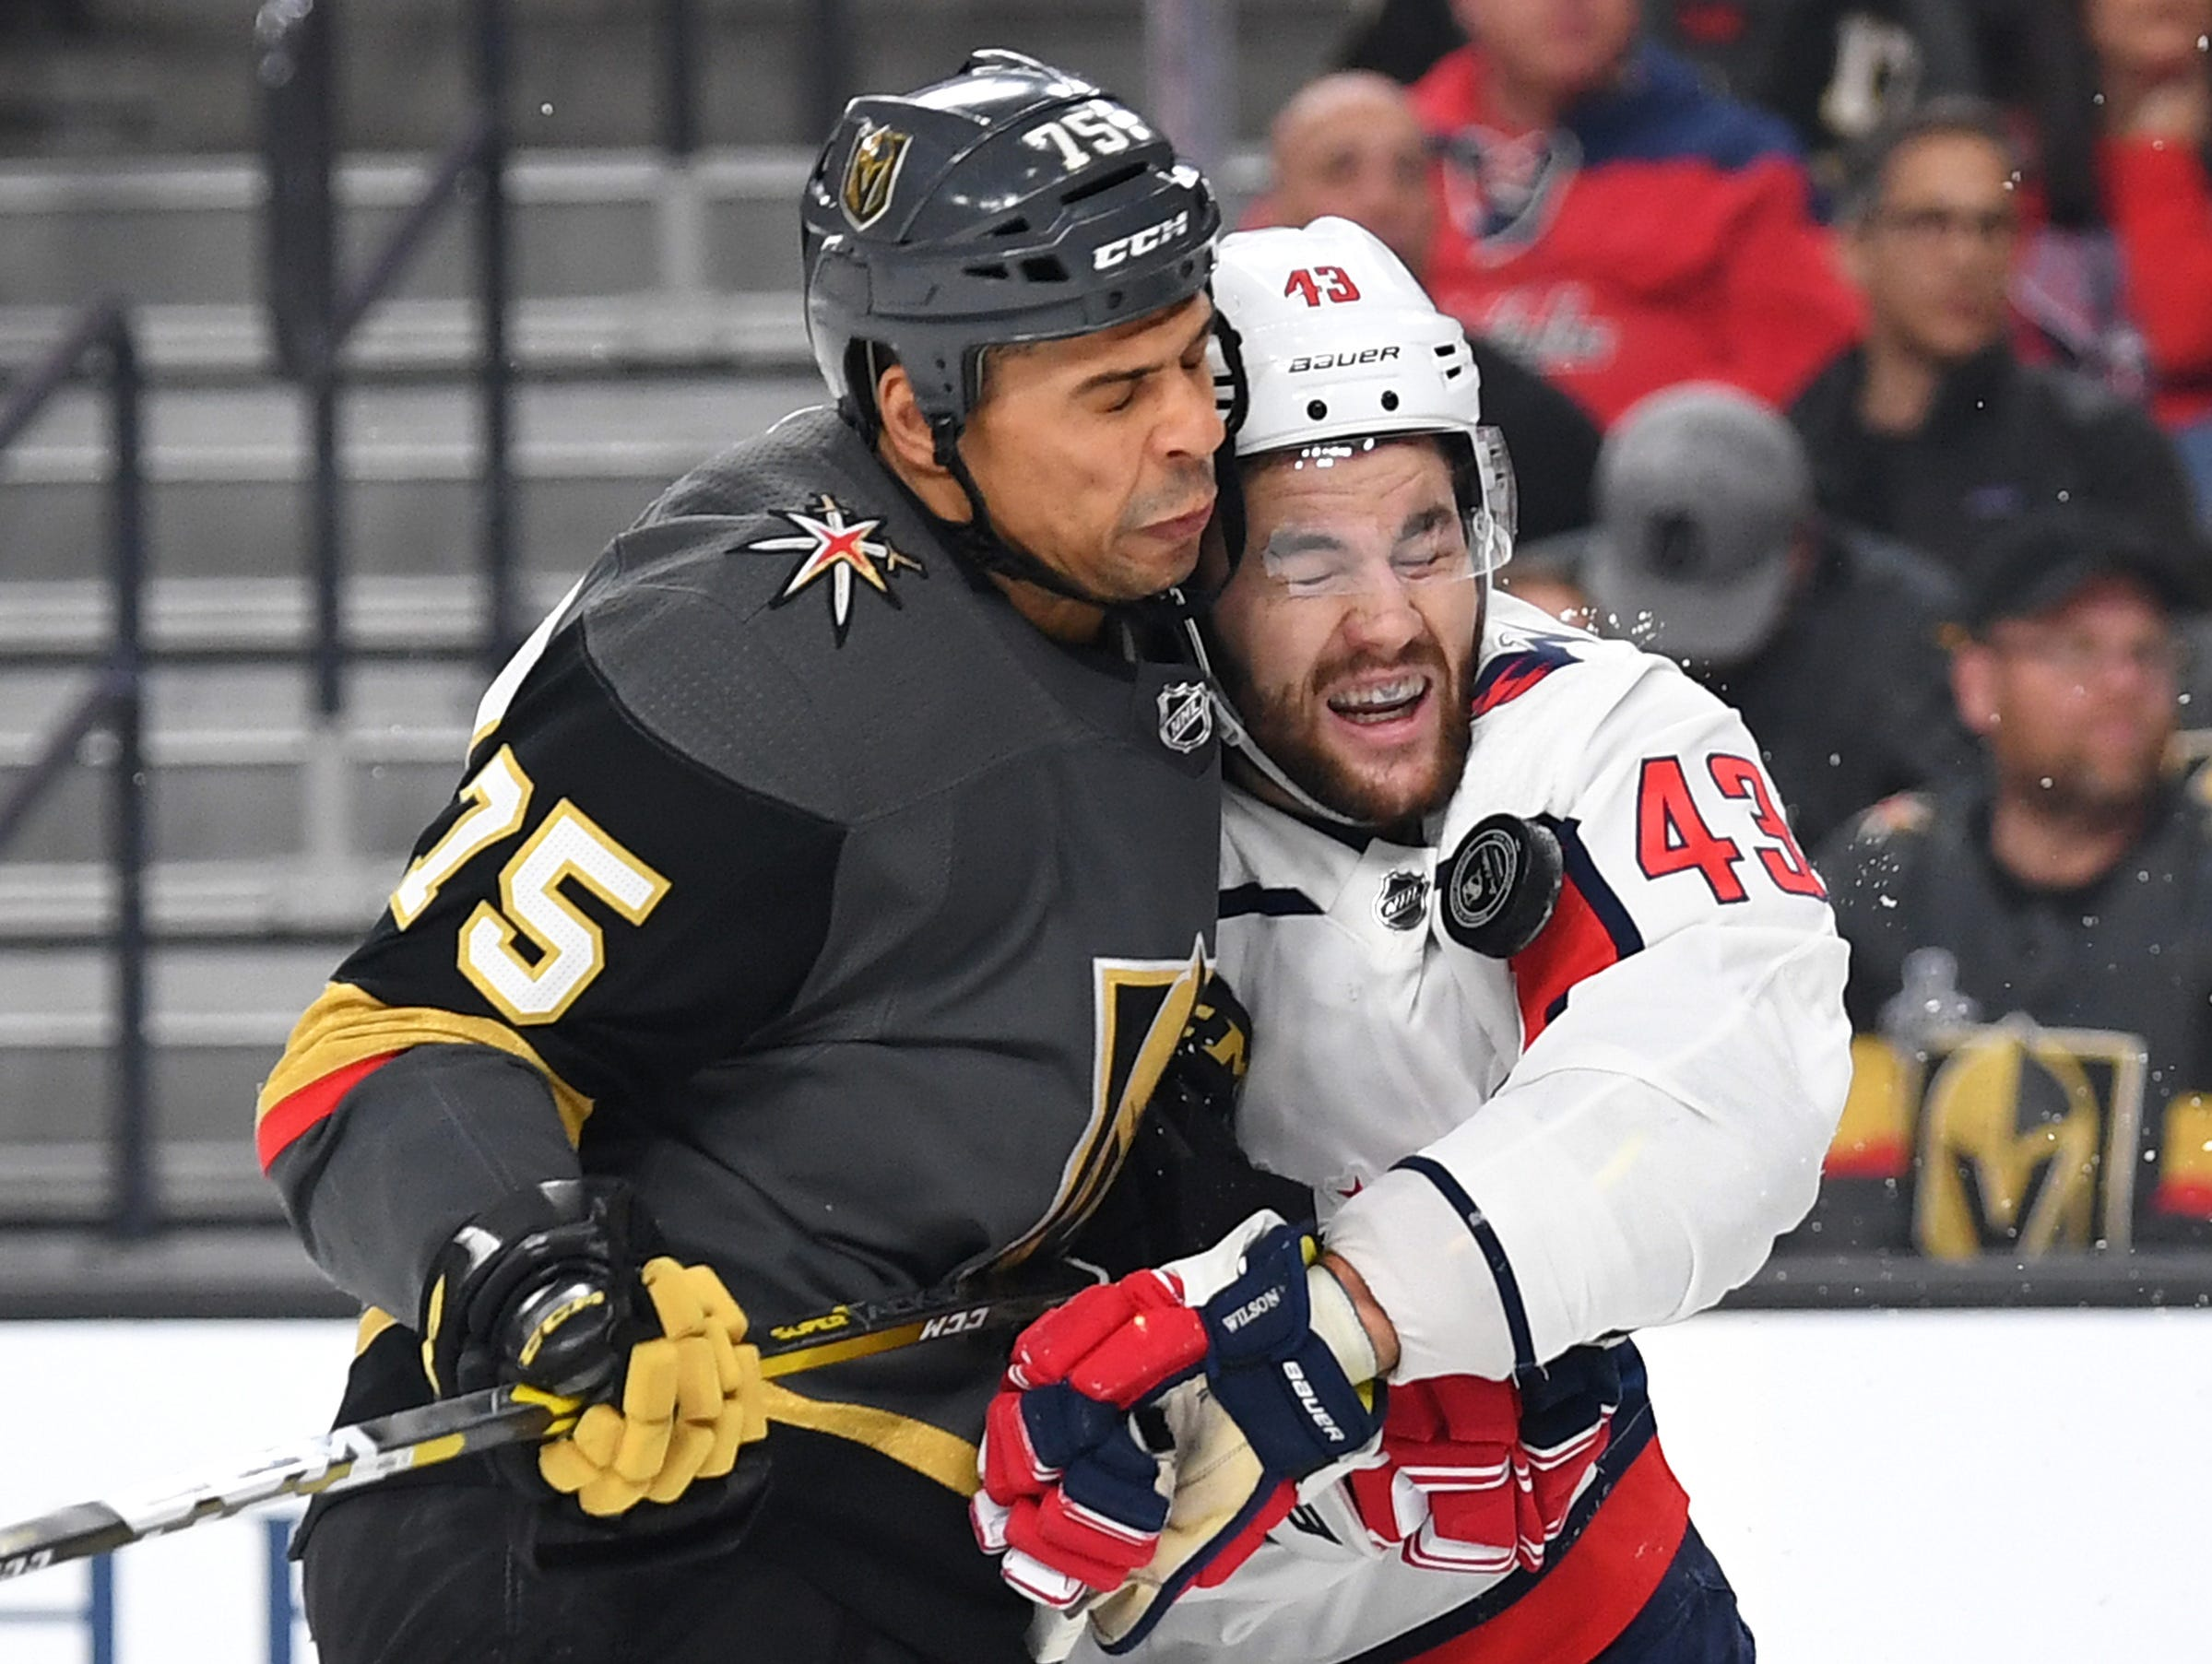 Dec. 4: Vegas Golden Knights right wing Ryan Reaves (75) checks Washington Capitals right wing Tom Wilson (43) during the first period at T-Mobile Arena.